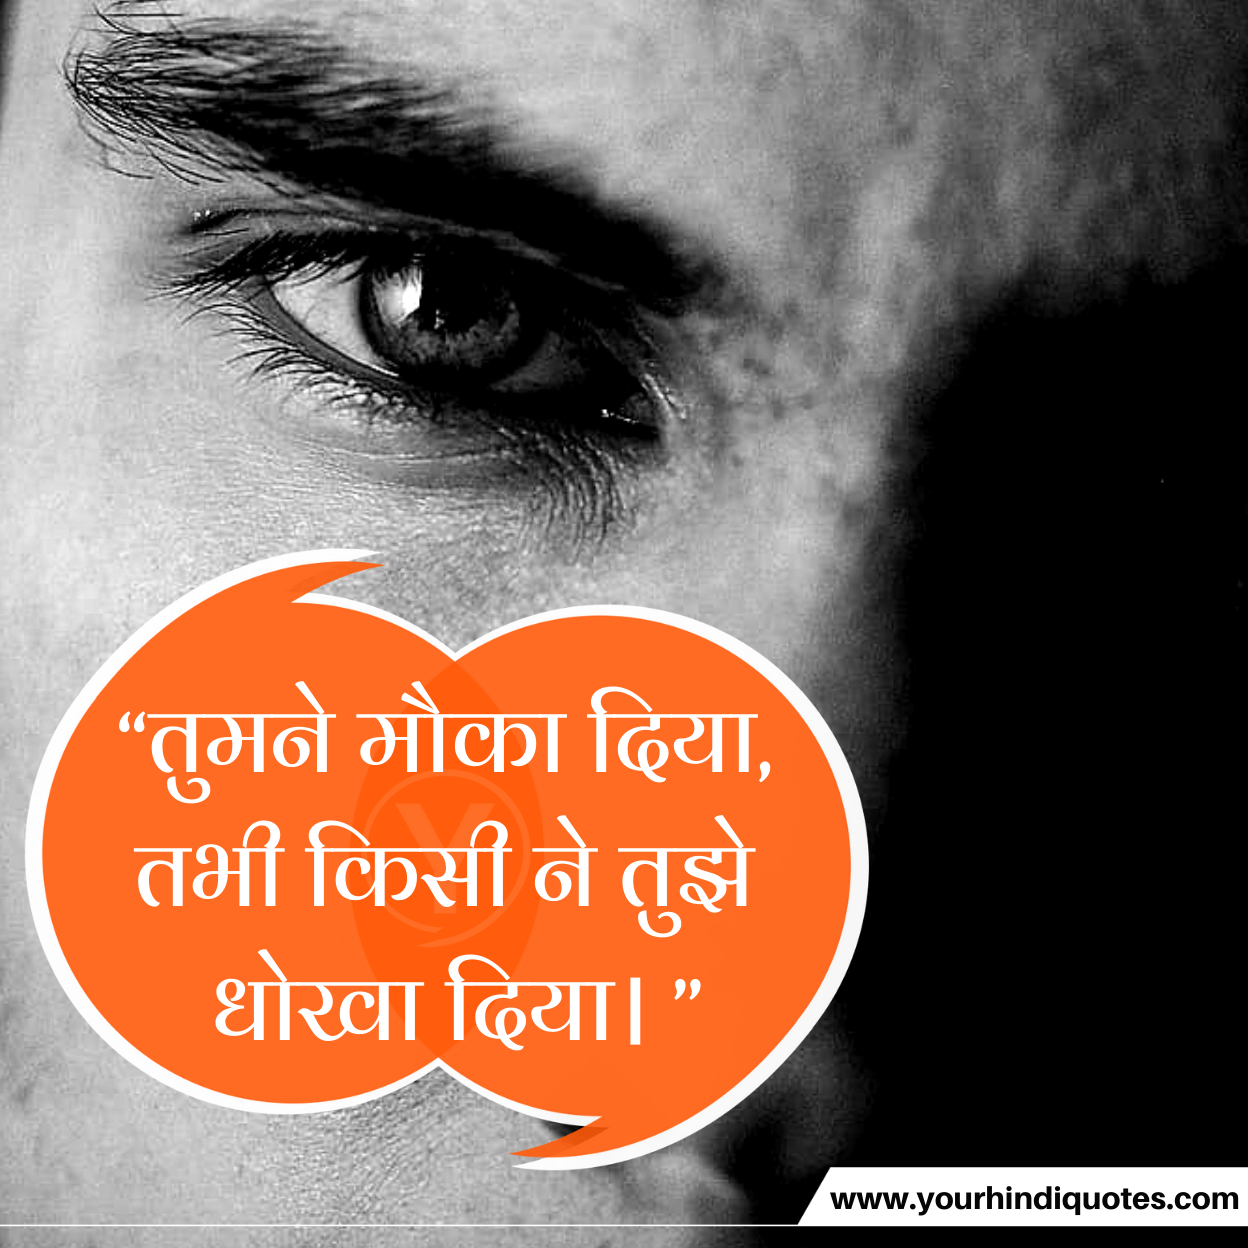 Emotional Hindi quotes pictures